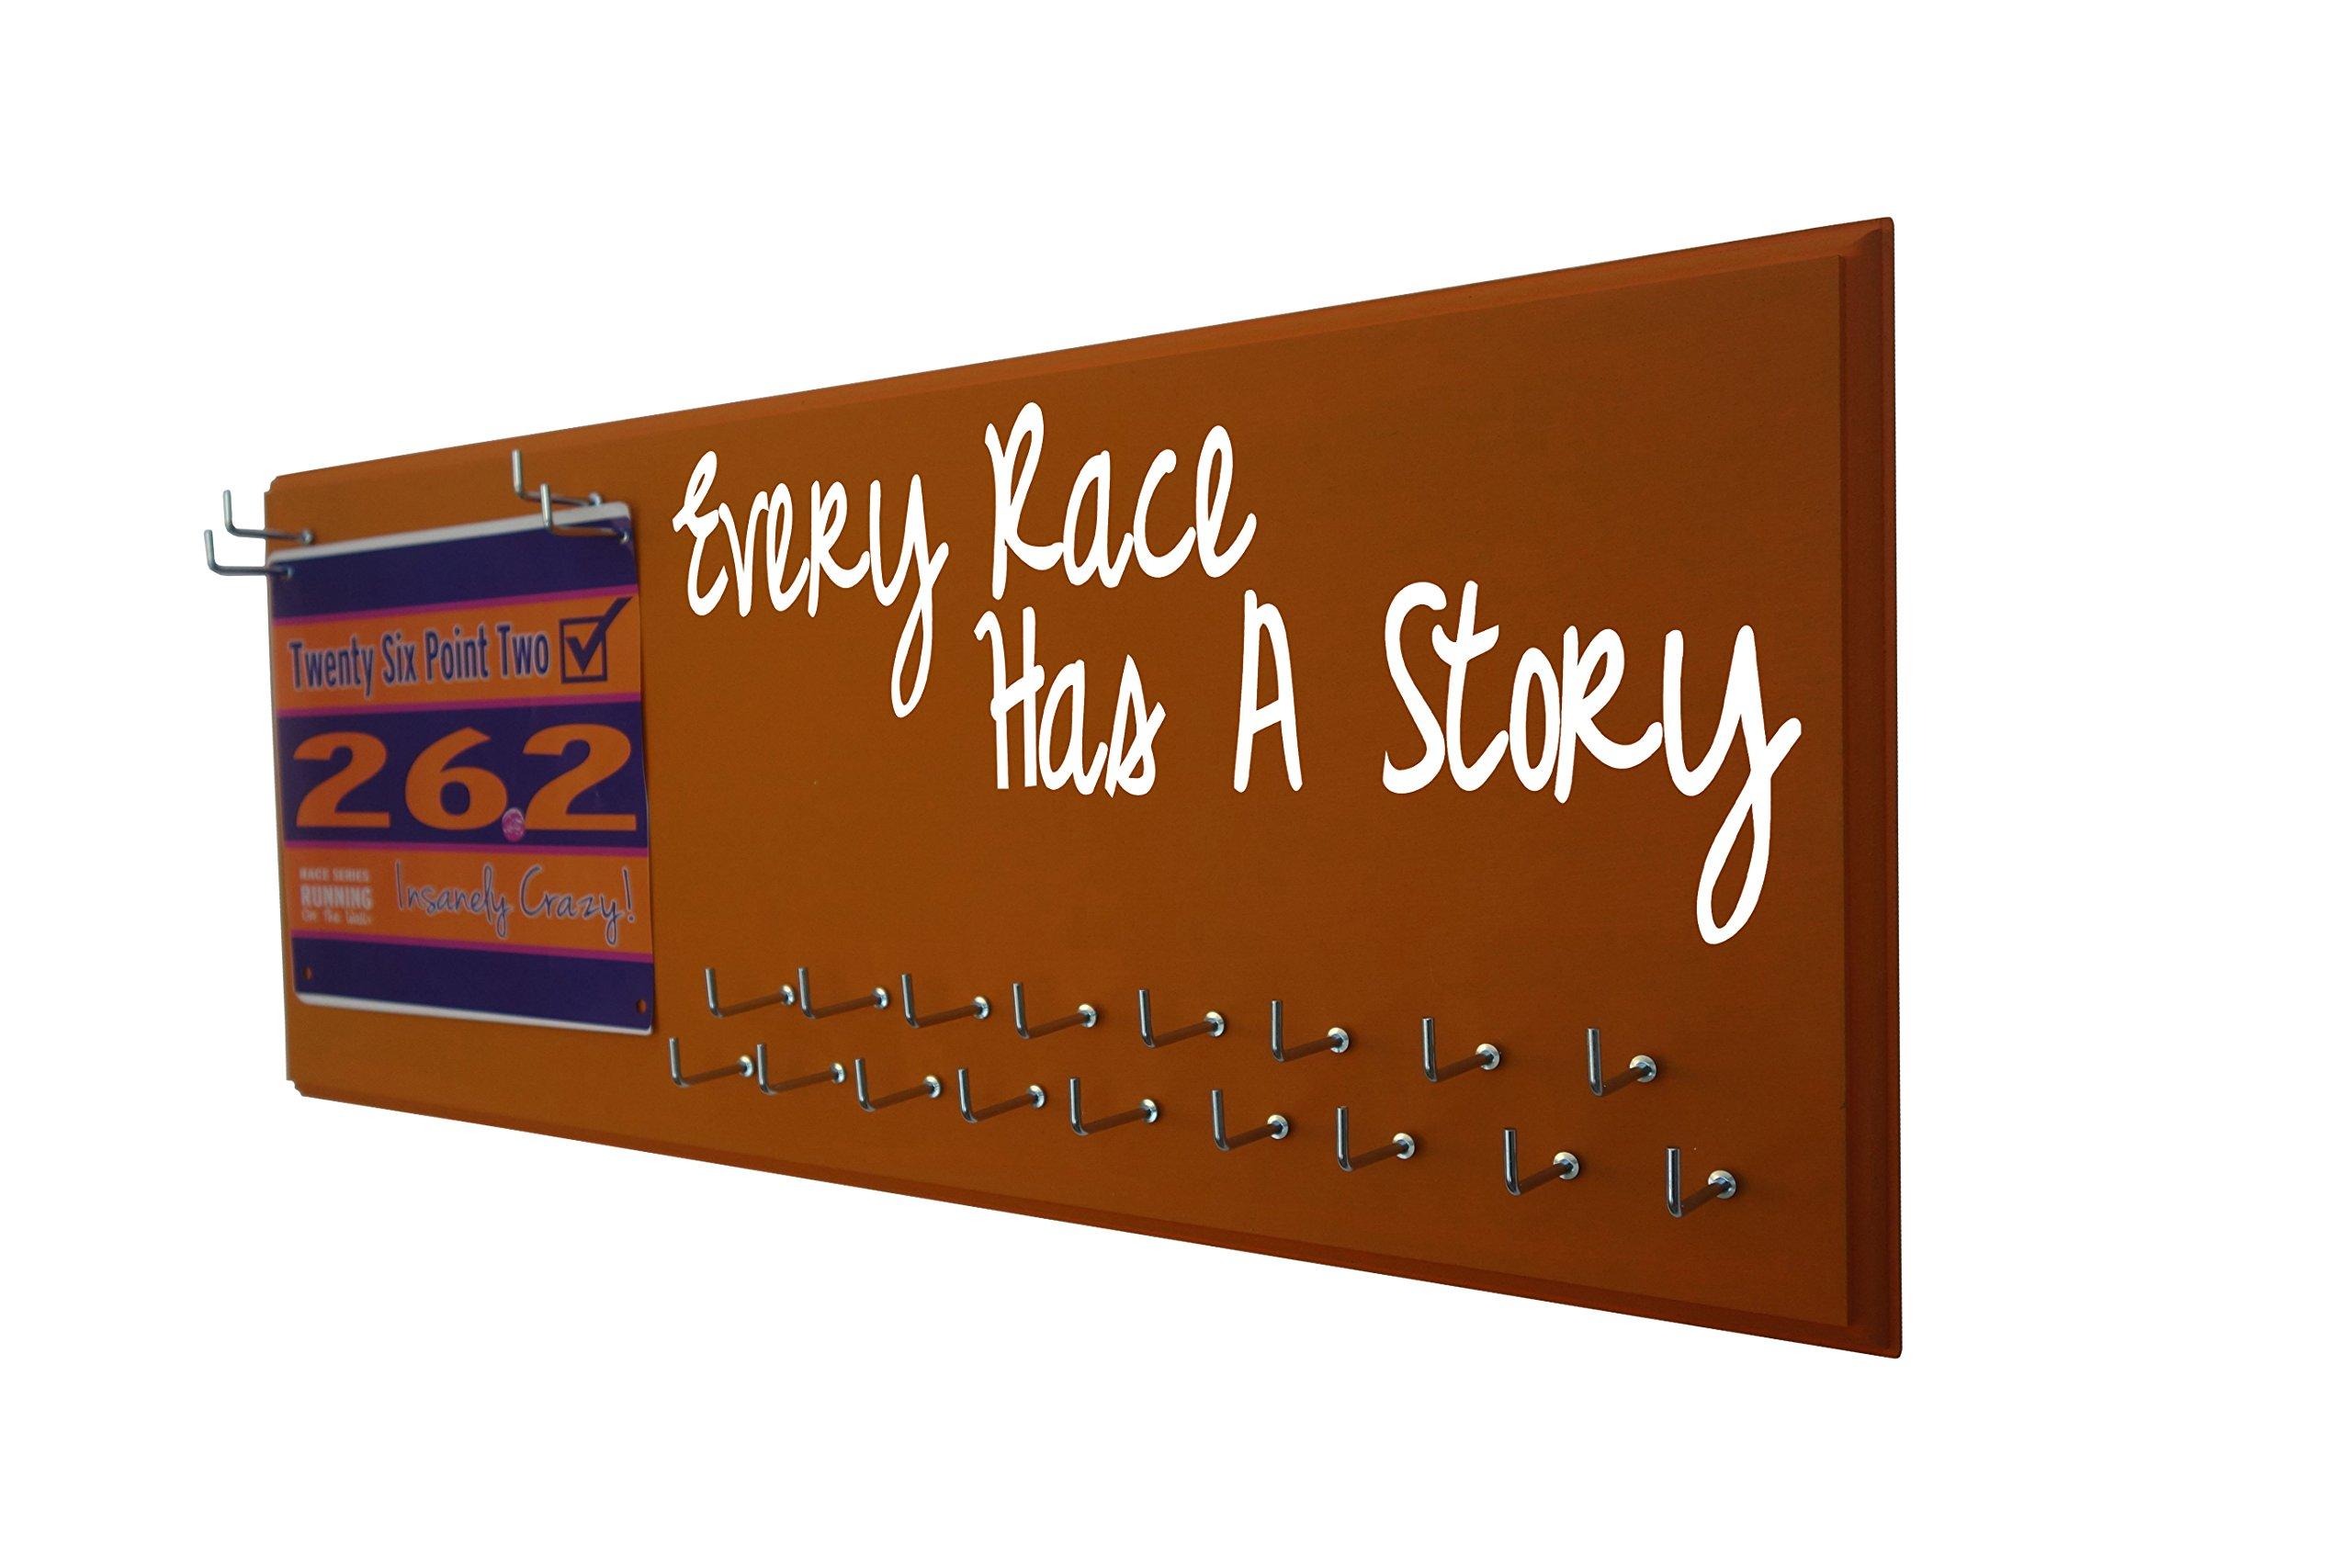 Running On The Wall - Race Bib Medal Display Rack- Wall Mounted Sports Medal Holder Hanger 5K, 10K Marathons Runners - Every Race HAS A Story